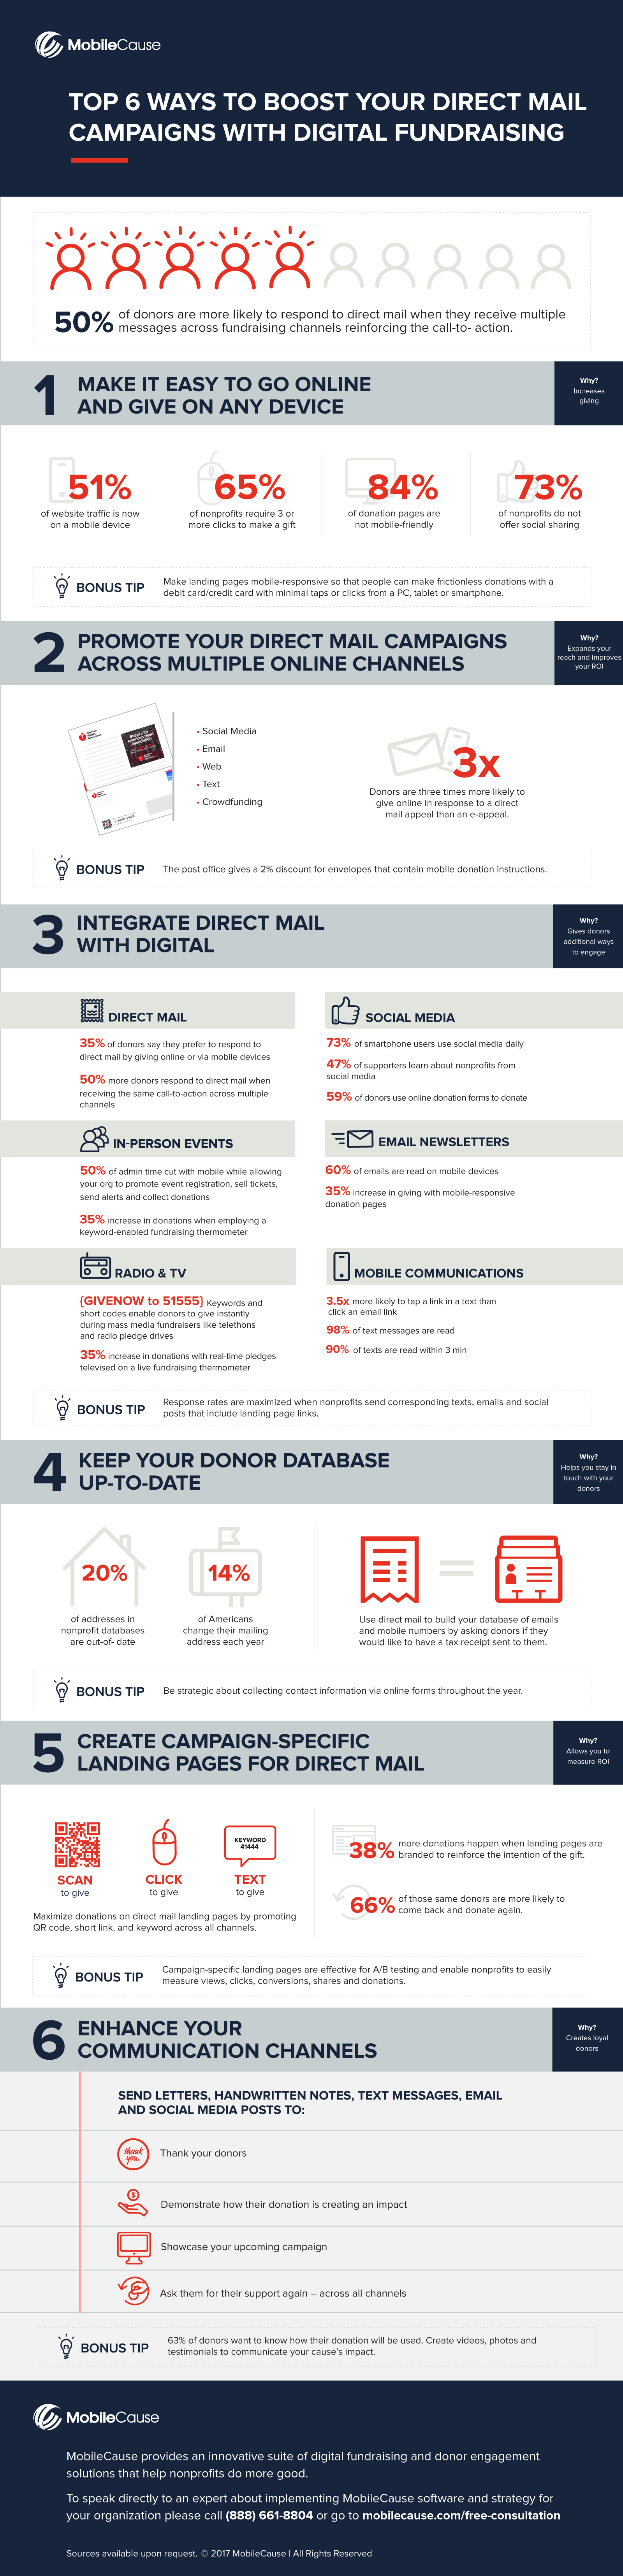 DirectMail_Infographic_Final_17_1600